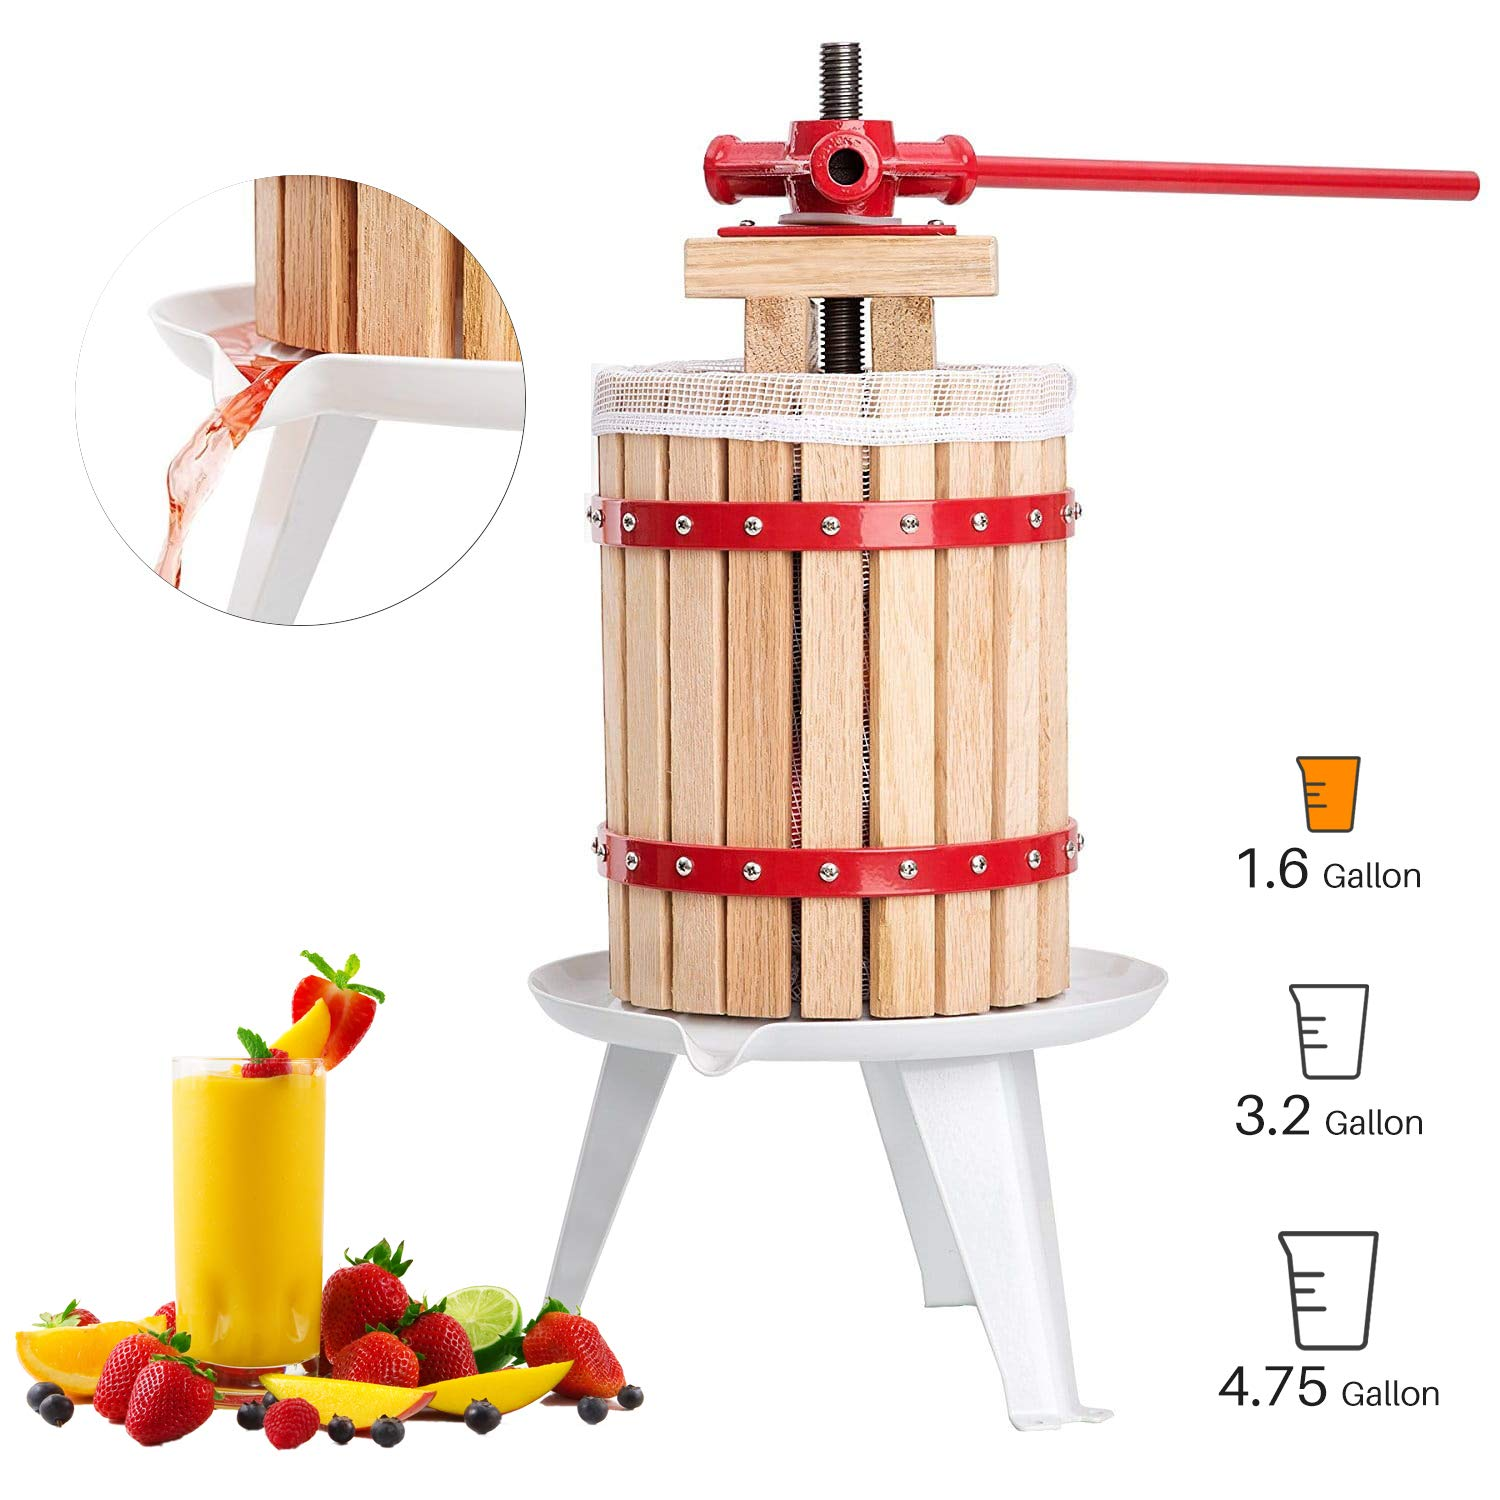 Fruit and Wine Press 1.6 Gallon Cider Apple Grape Crusher Juice Maker Tool Wood by Eelpitha